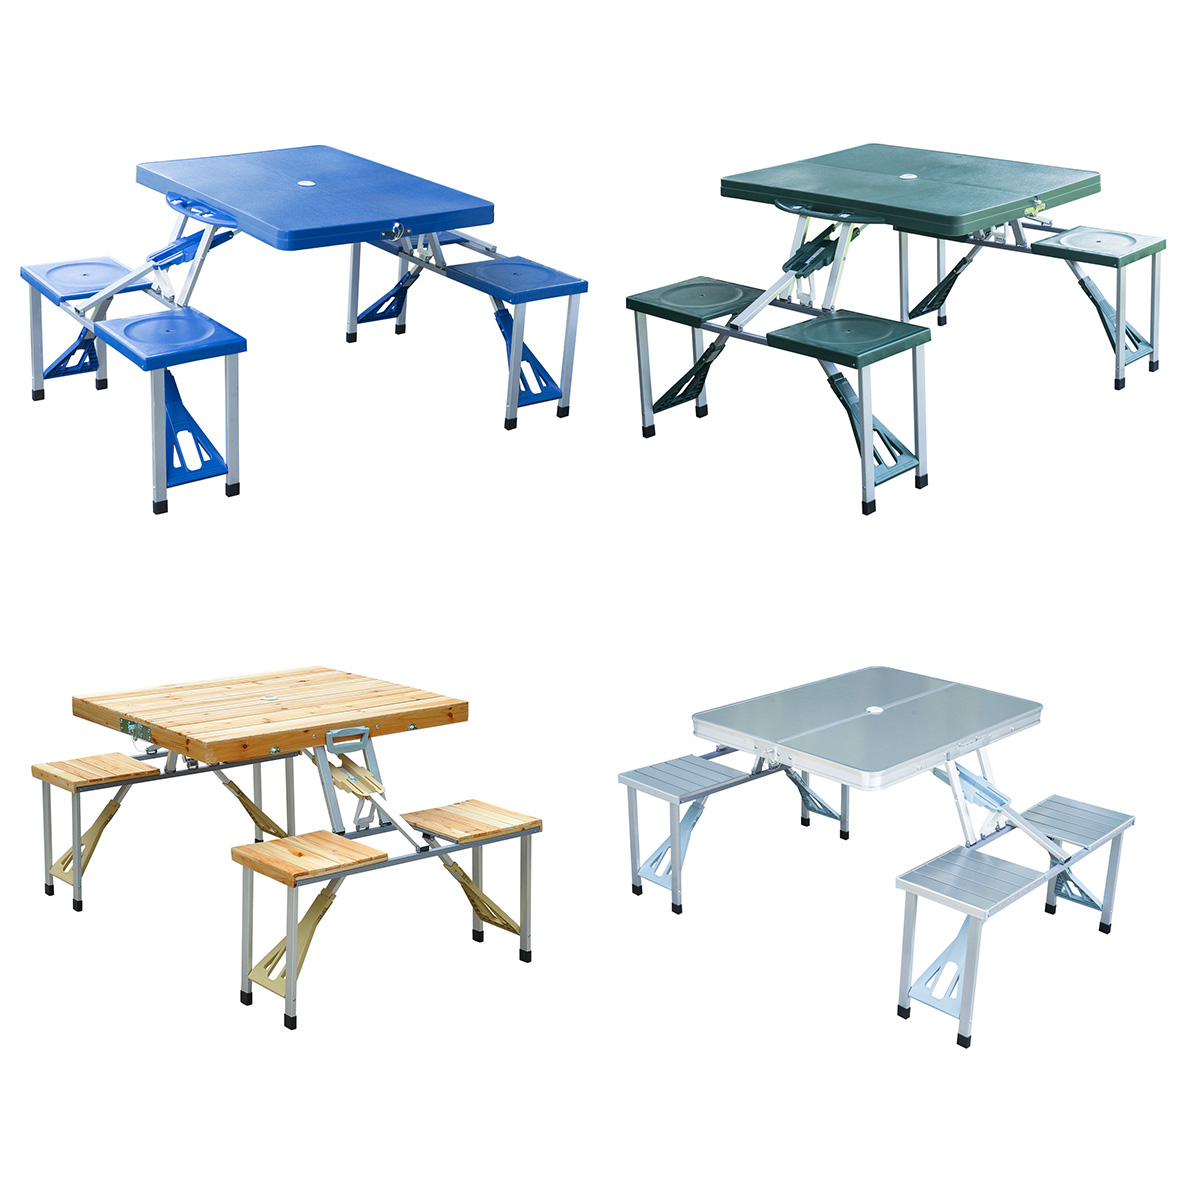 Portable Folding Picnic Table - 4 Options